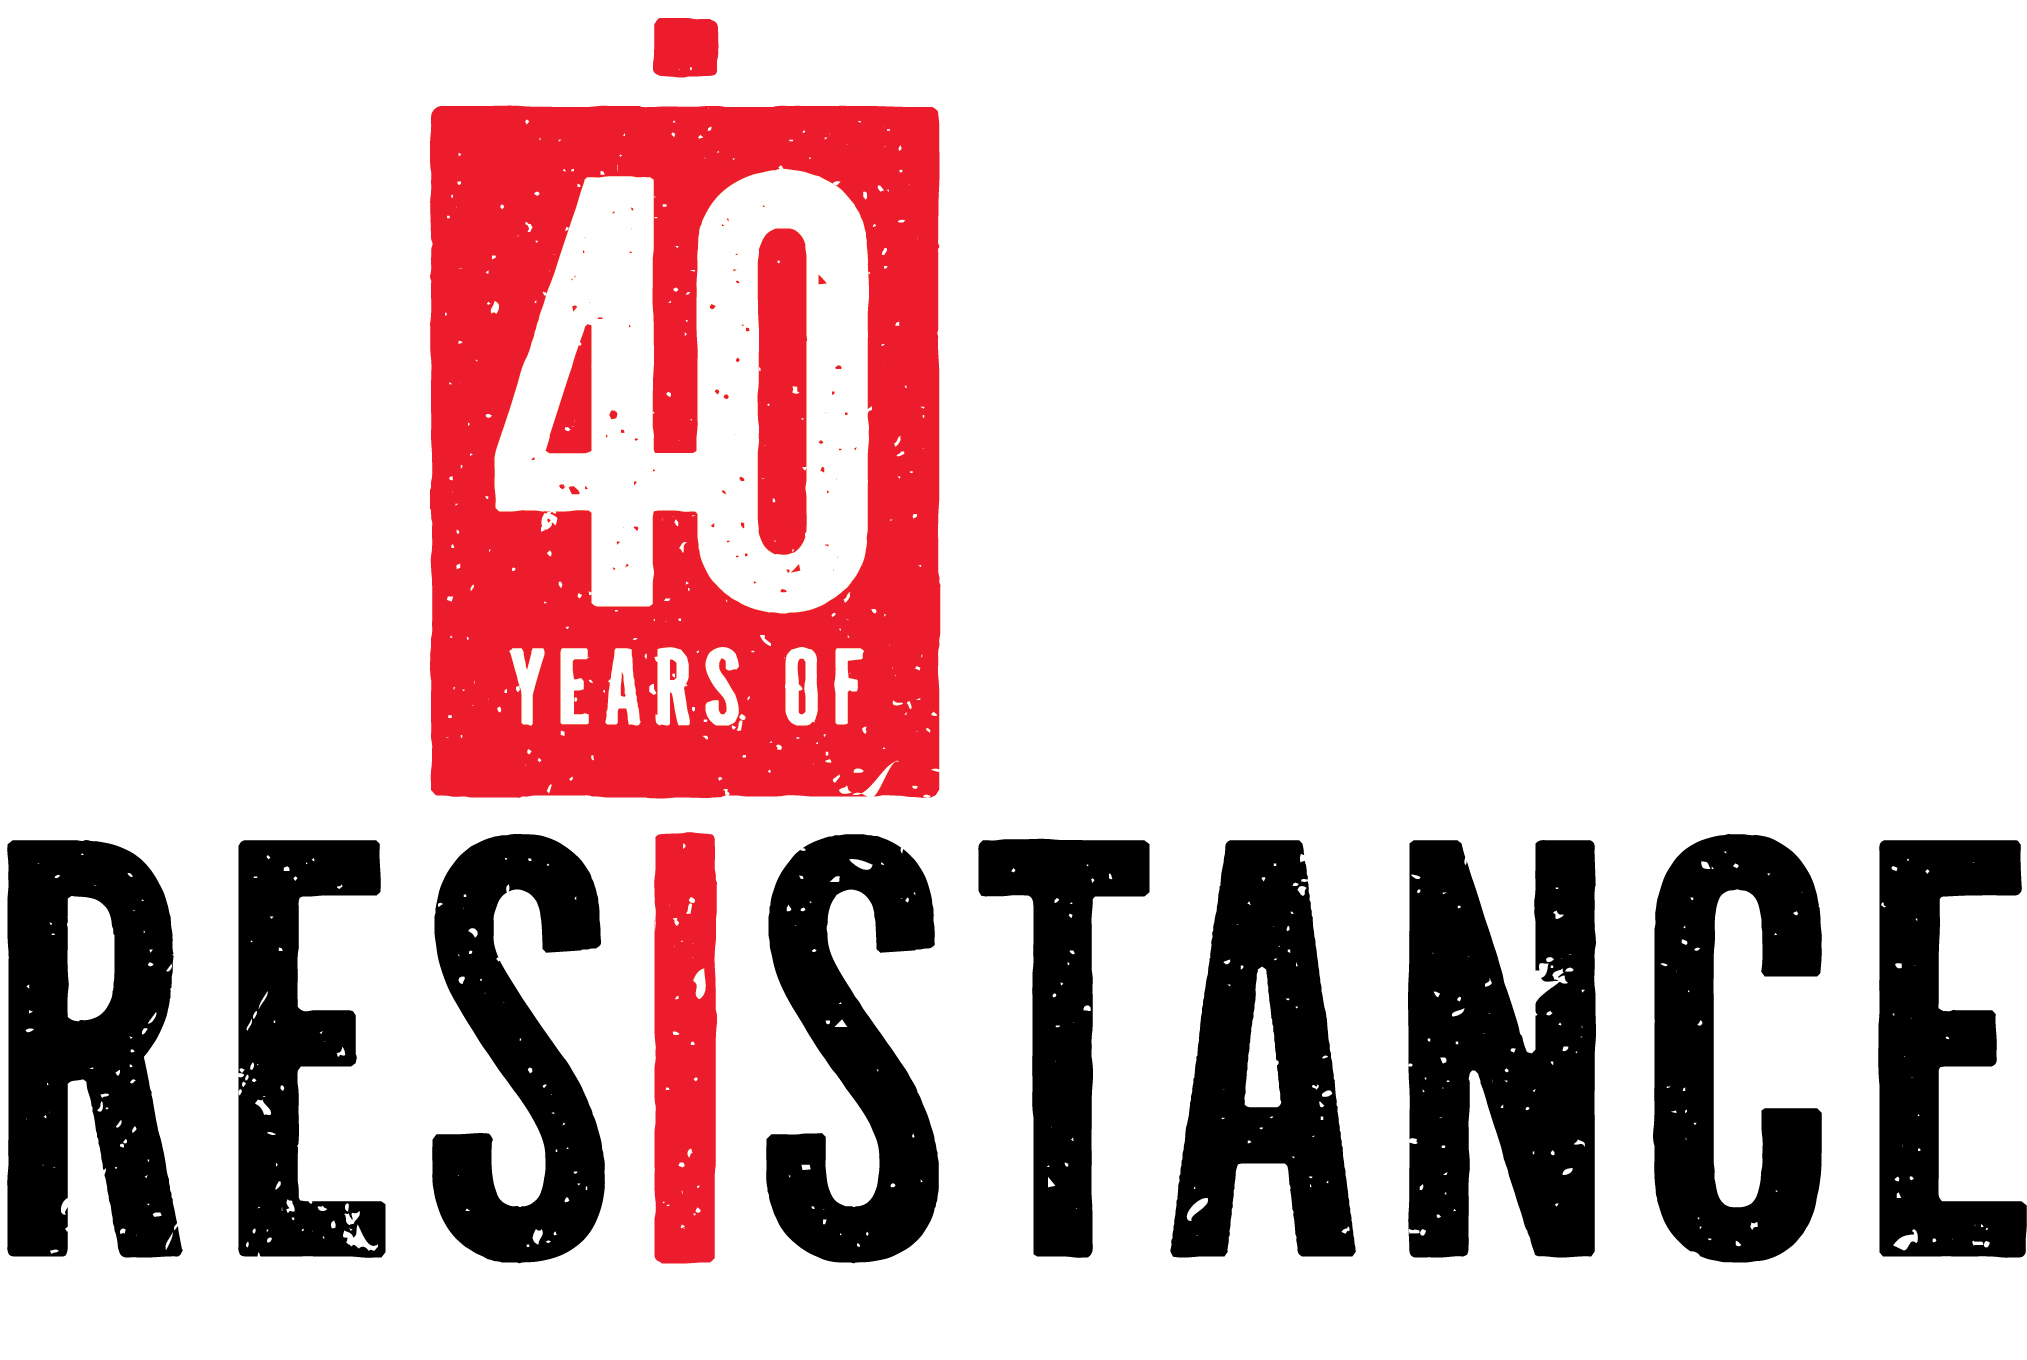 Tribute to Change: 40 Years of Resistance on Tuesday, November 14, 2017